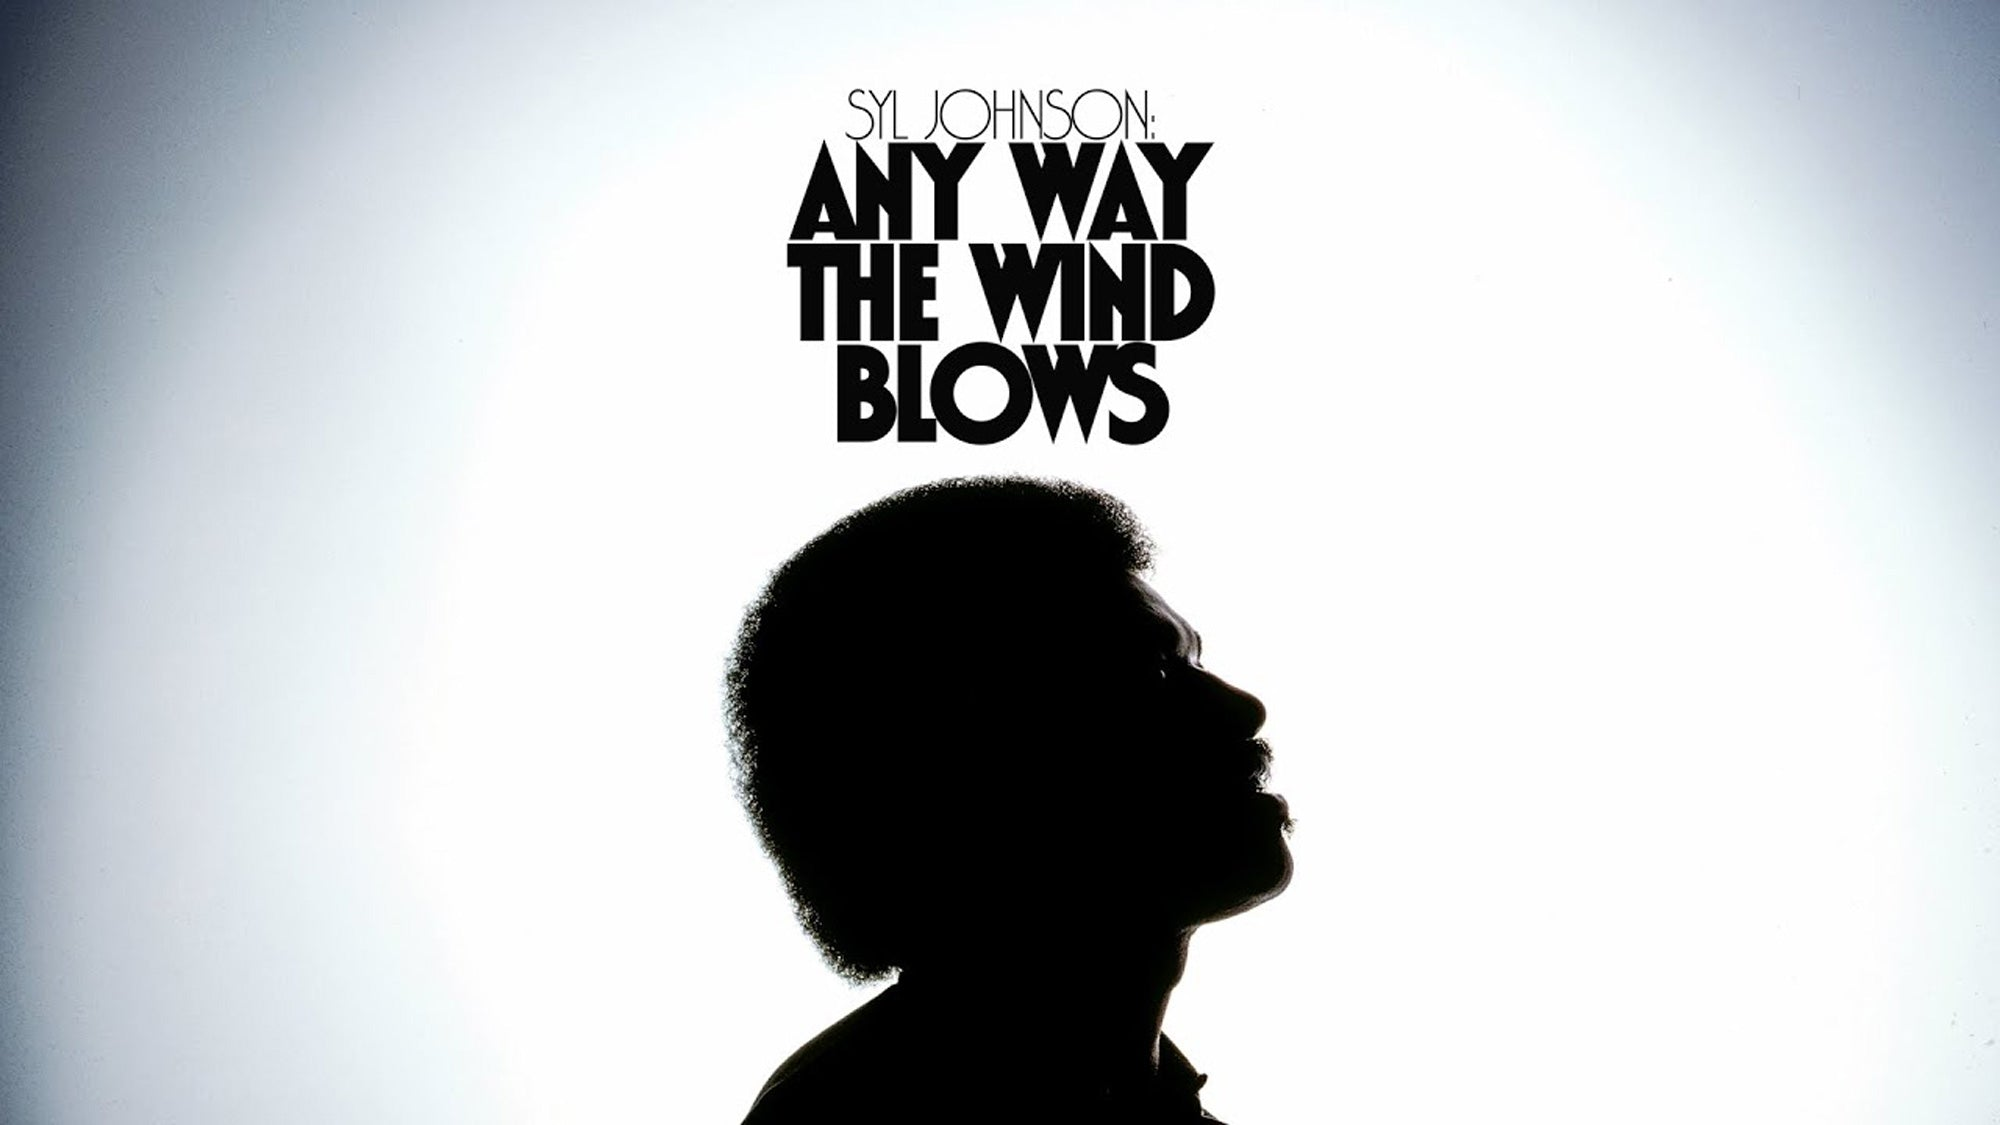 DOCUMENTARY: SYL JOHNSON, ANY WAY THE WIND BLOWS